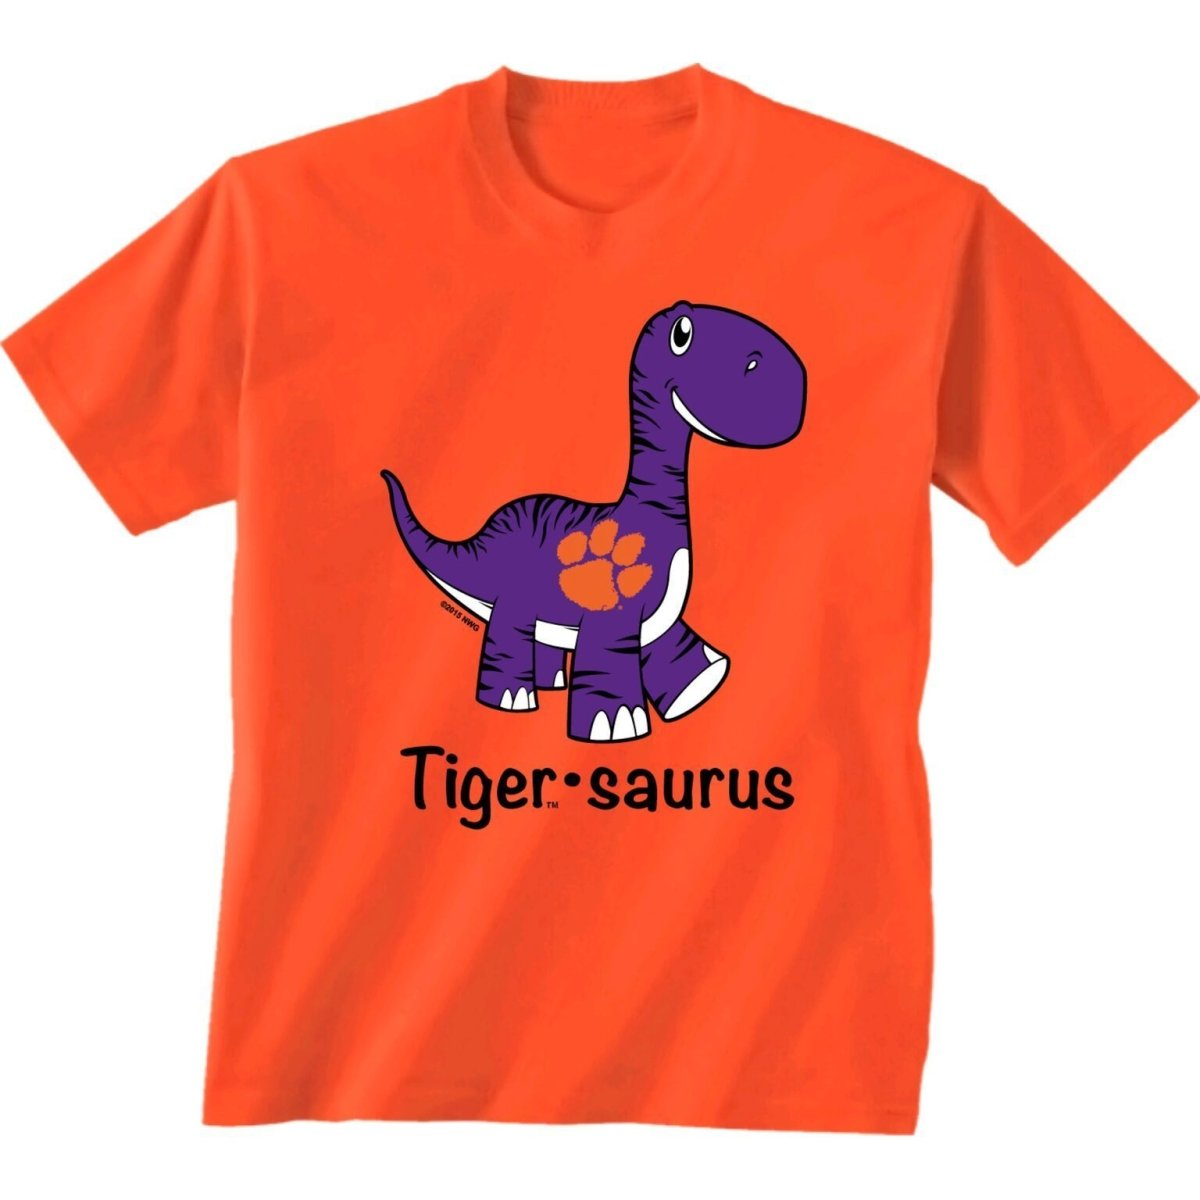 Infant Dino Tiger-saurus Tee - Mr. Knickerbocker